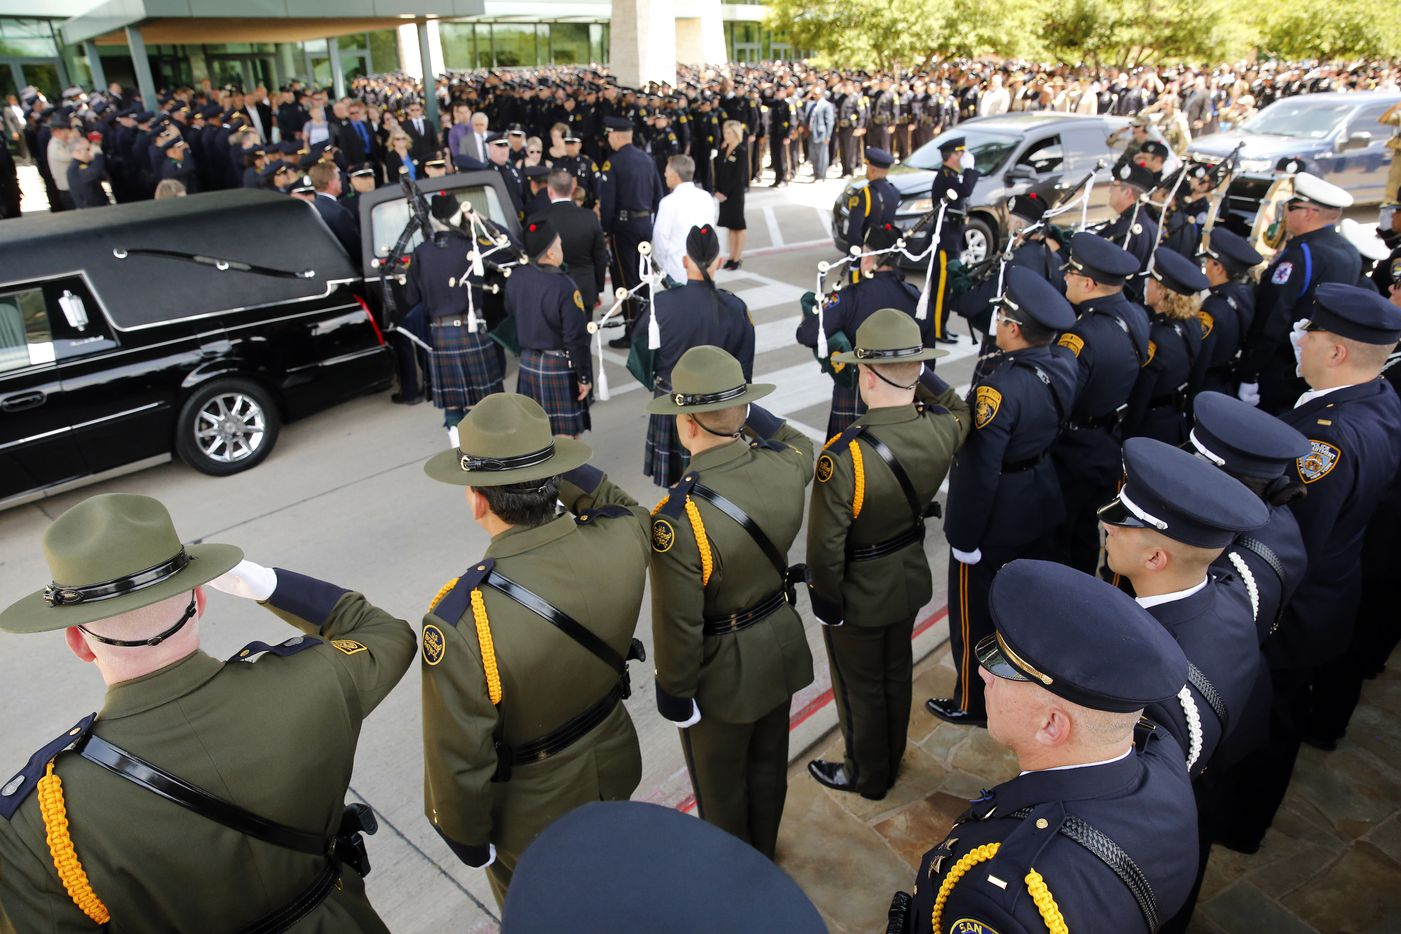 Border Patrol officers, front left, joined other officers as they salute fallen Dallas police officer Lorne Ahrens as the casket is placed in the hearse at Prestonwood Baptist Church in Plano, Wednesday, July 12, 2016.